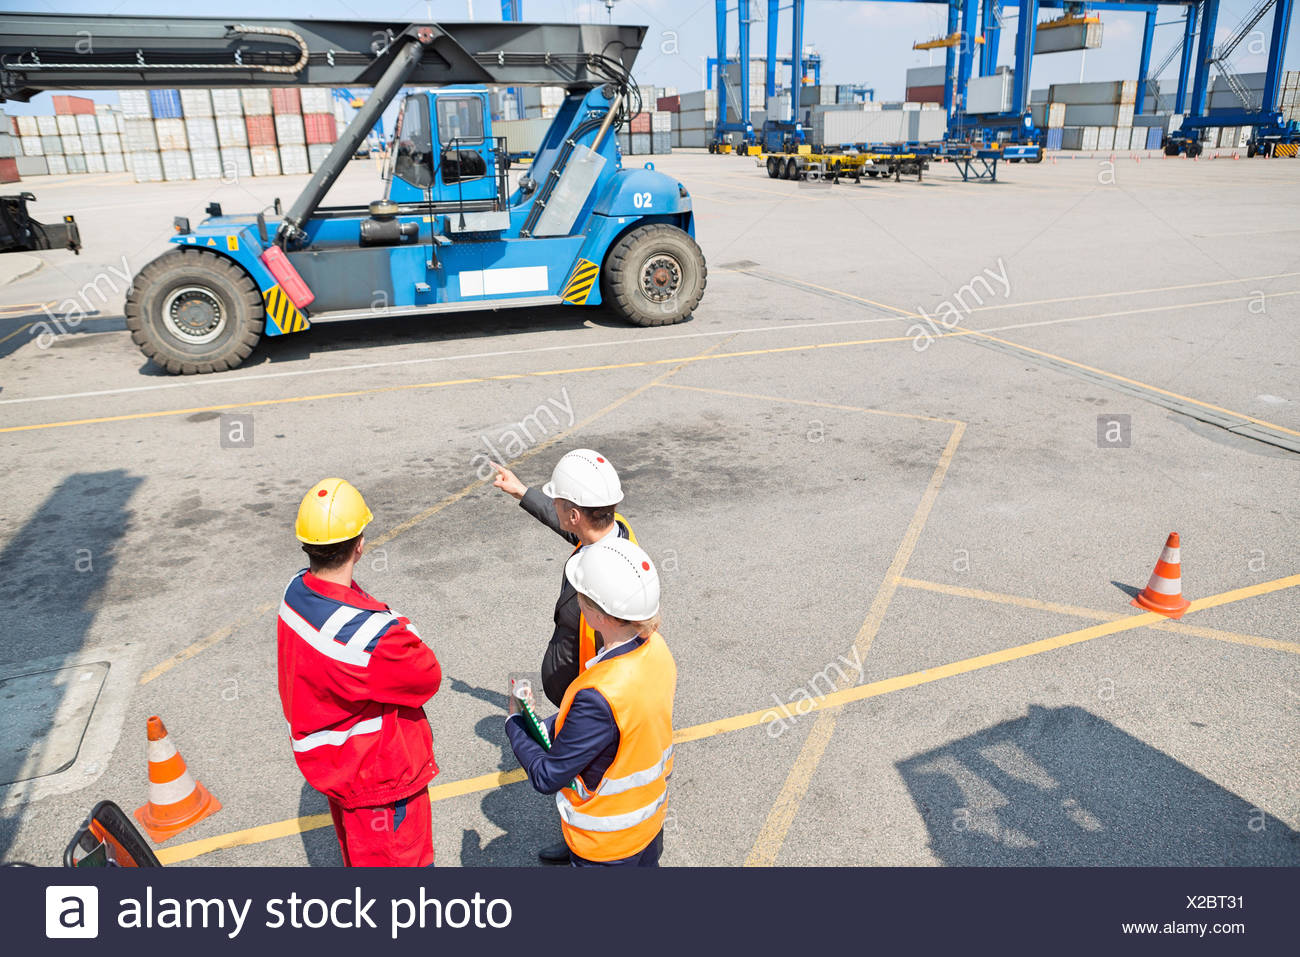 High angle view of workers discussing in shipping yard - Stock Image